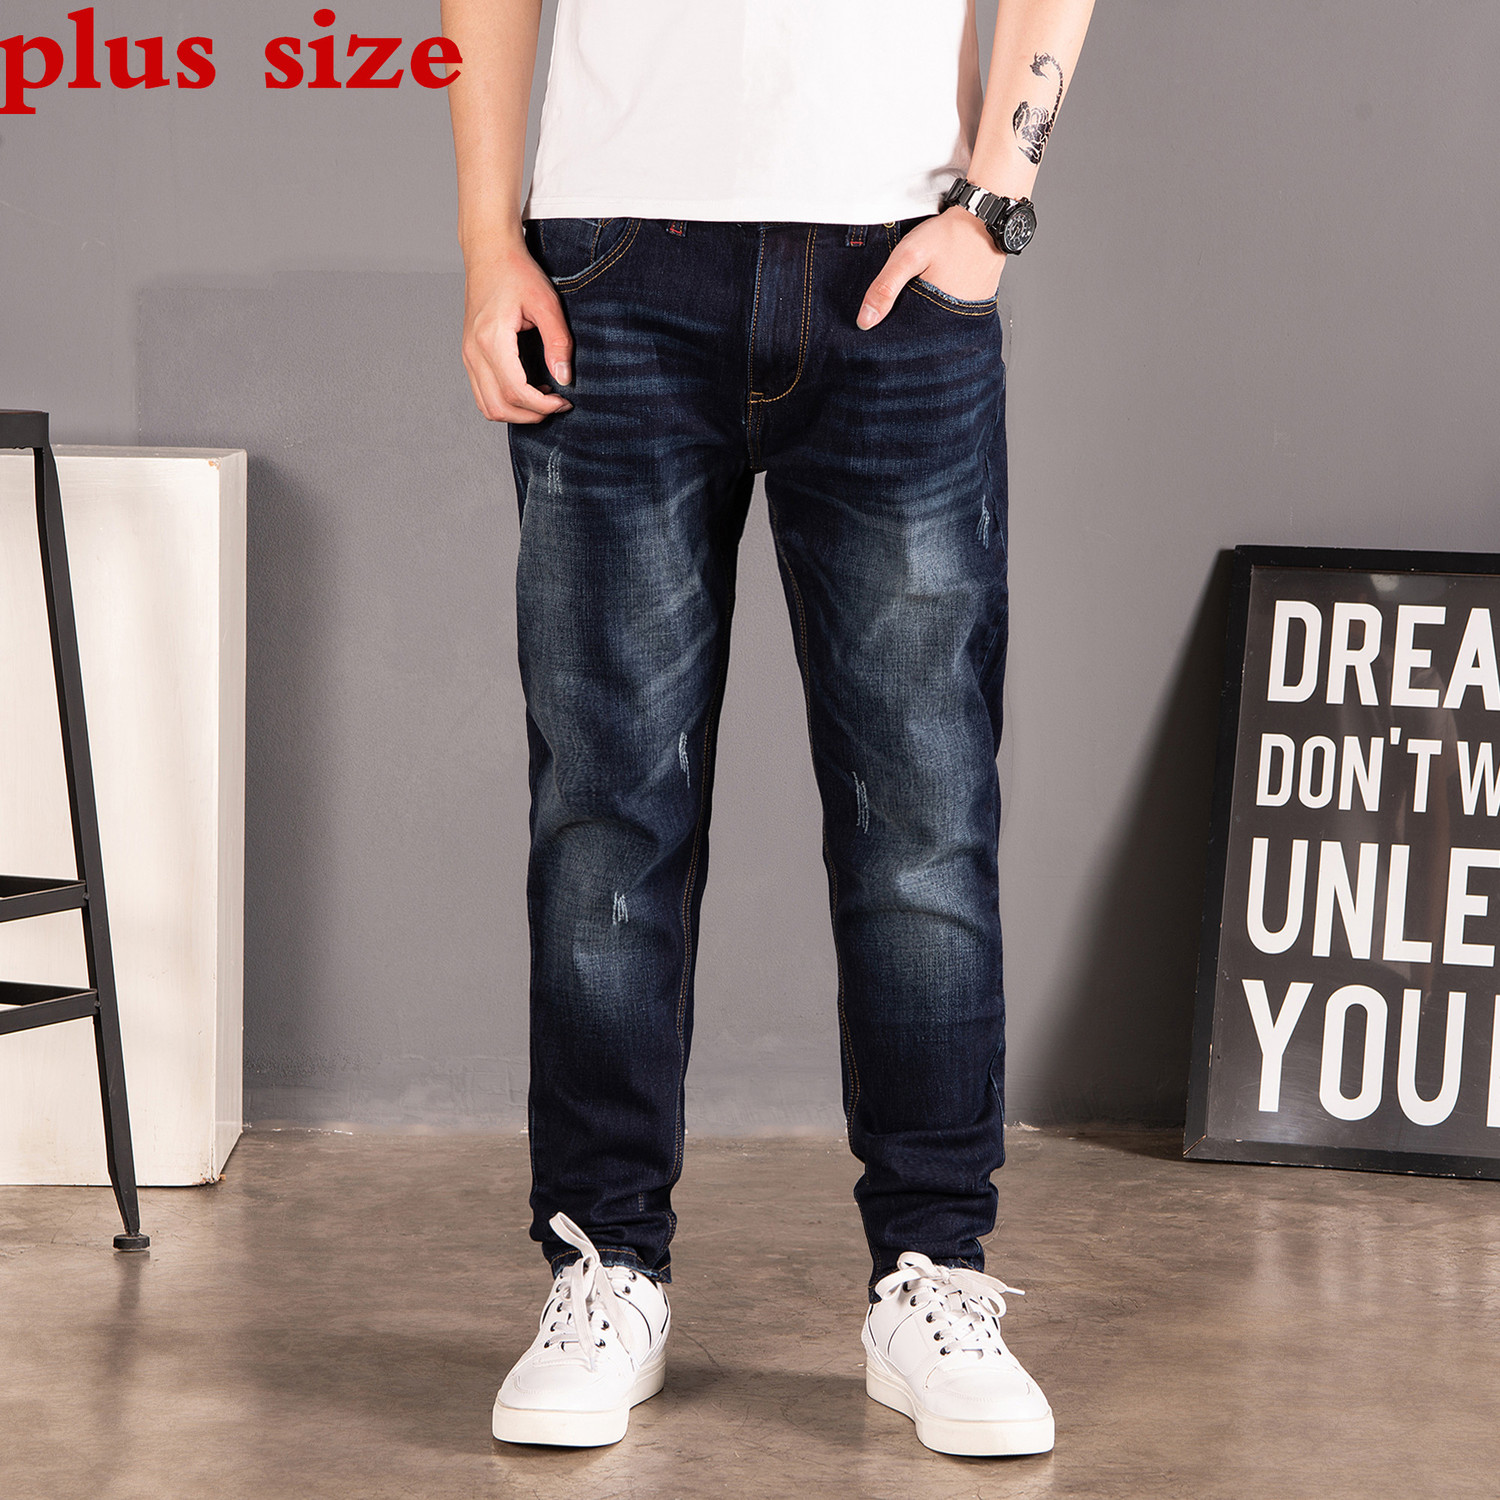 2020 New Plus Size 46 44 42  40 Jeans Men Loose Trousers Spring Autumn Jeans Pants Elasticity Straight Stretch